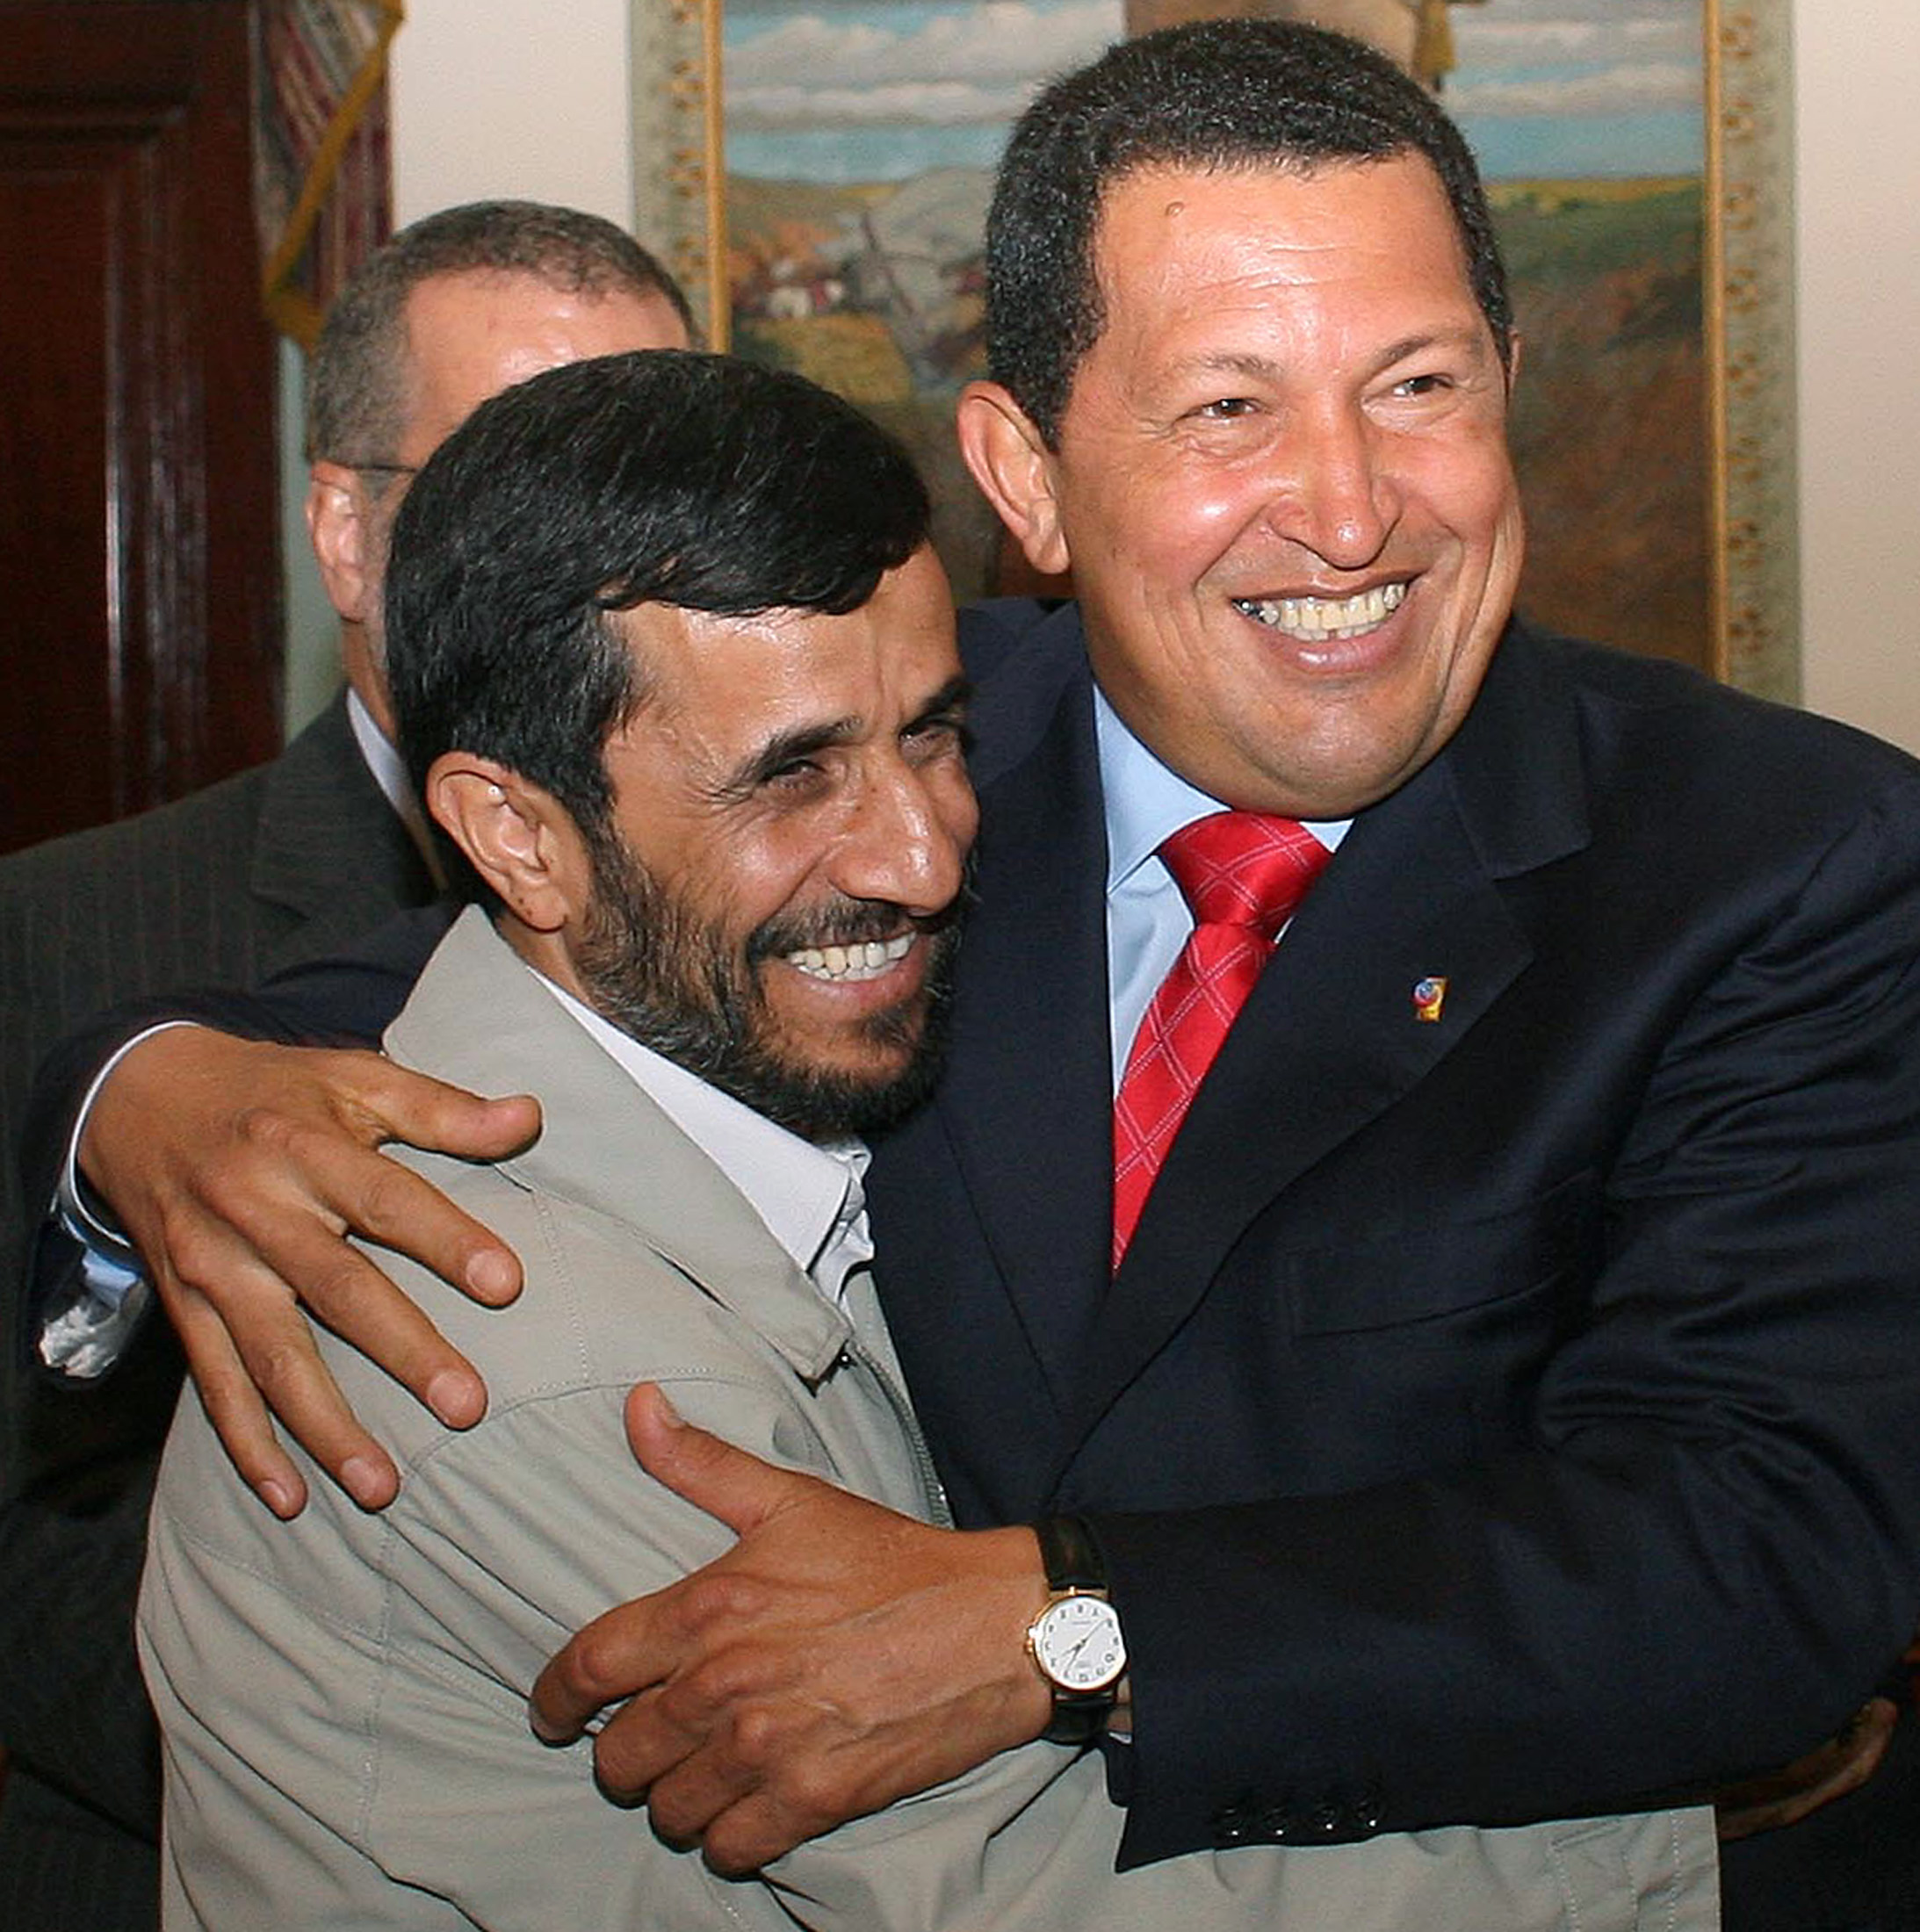 Iran's President Mahmoud Ahmadinejad (L) is welcomed by Venezuela's President Hugo Chavez at Miraflores Palace in Caracas September 17, 2006. ©REUTERS/Miraflores Palace/Handout